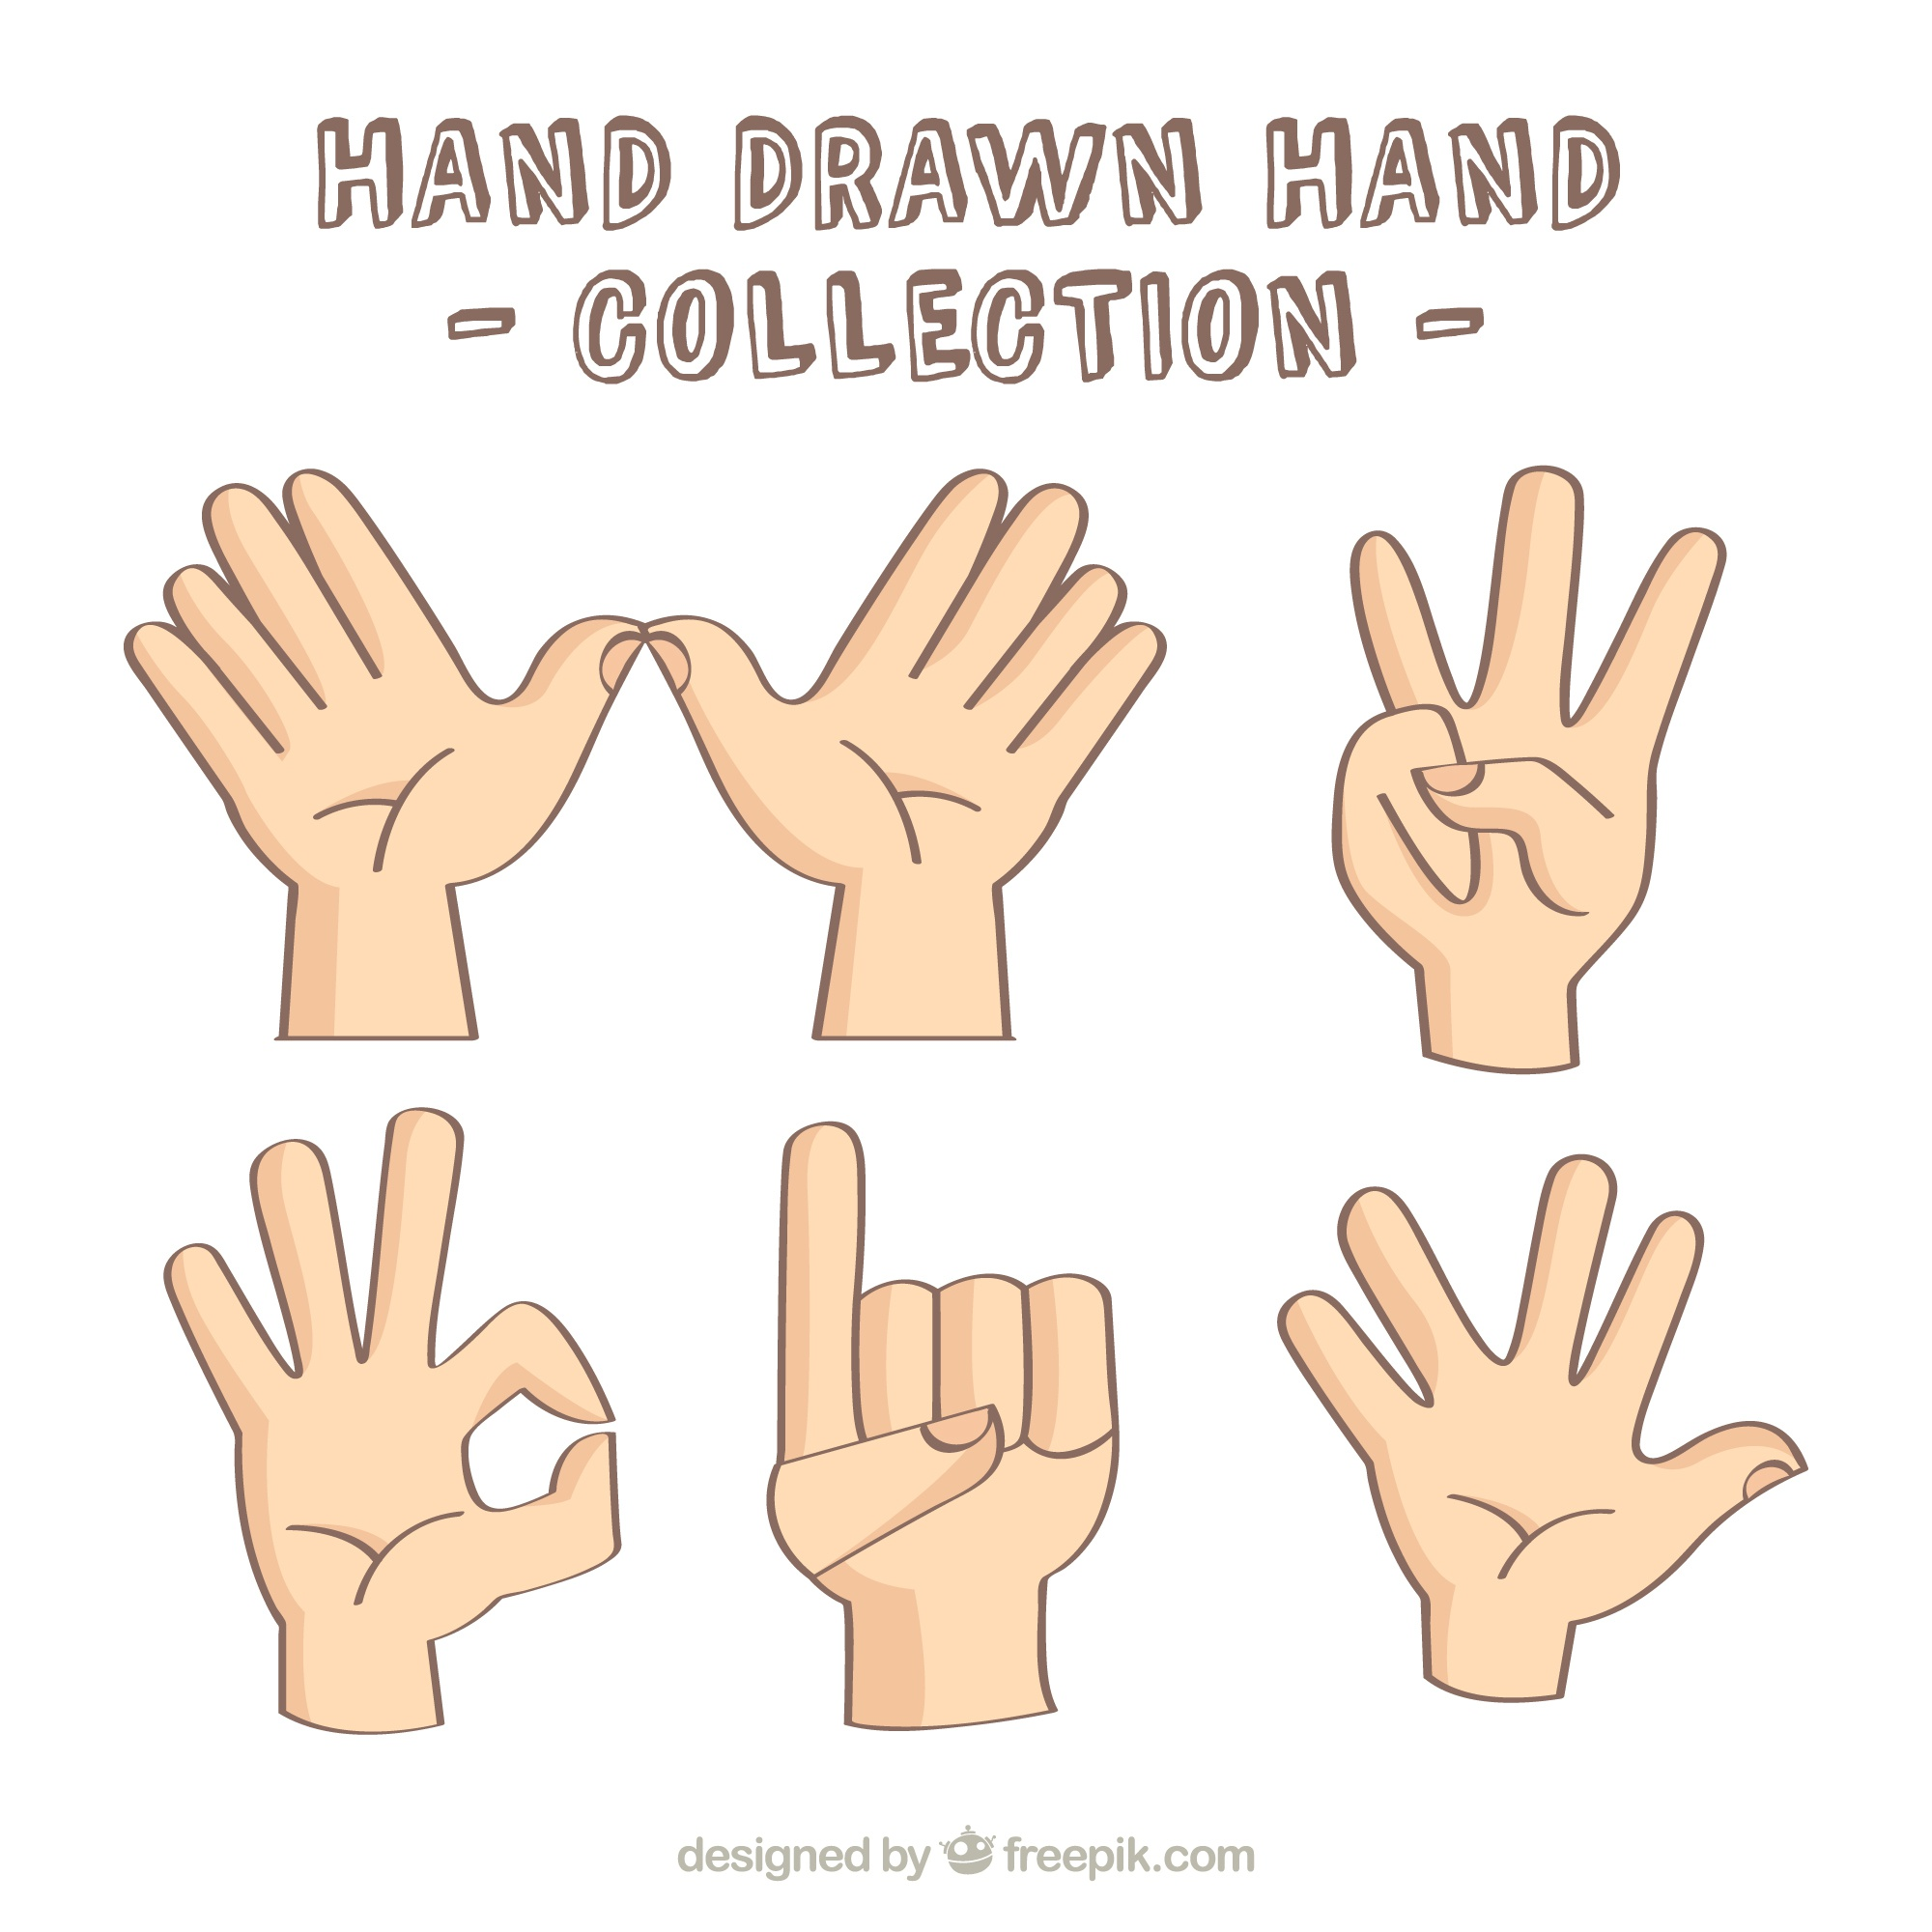 Several hands showing signs